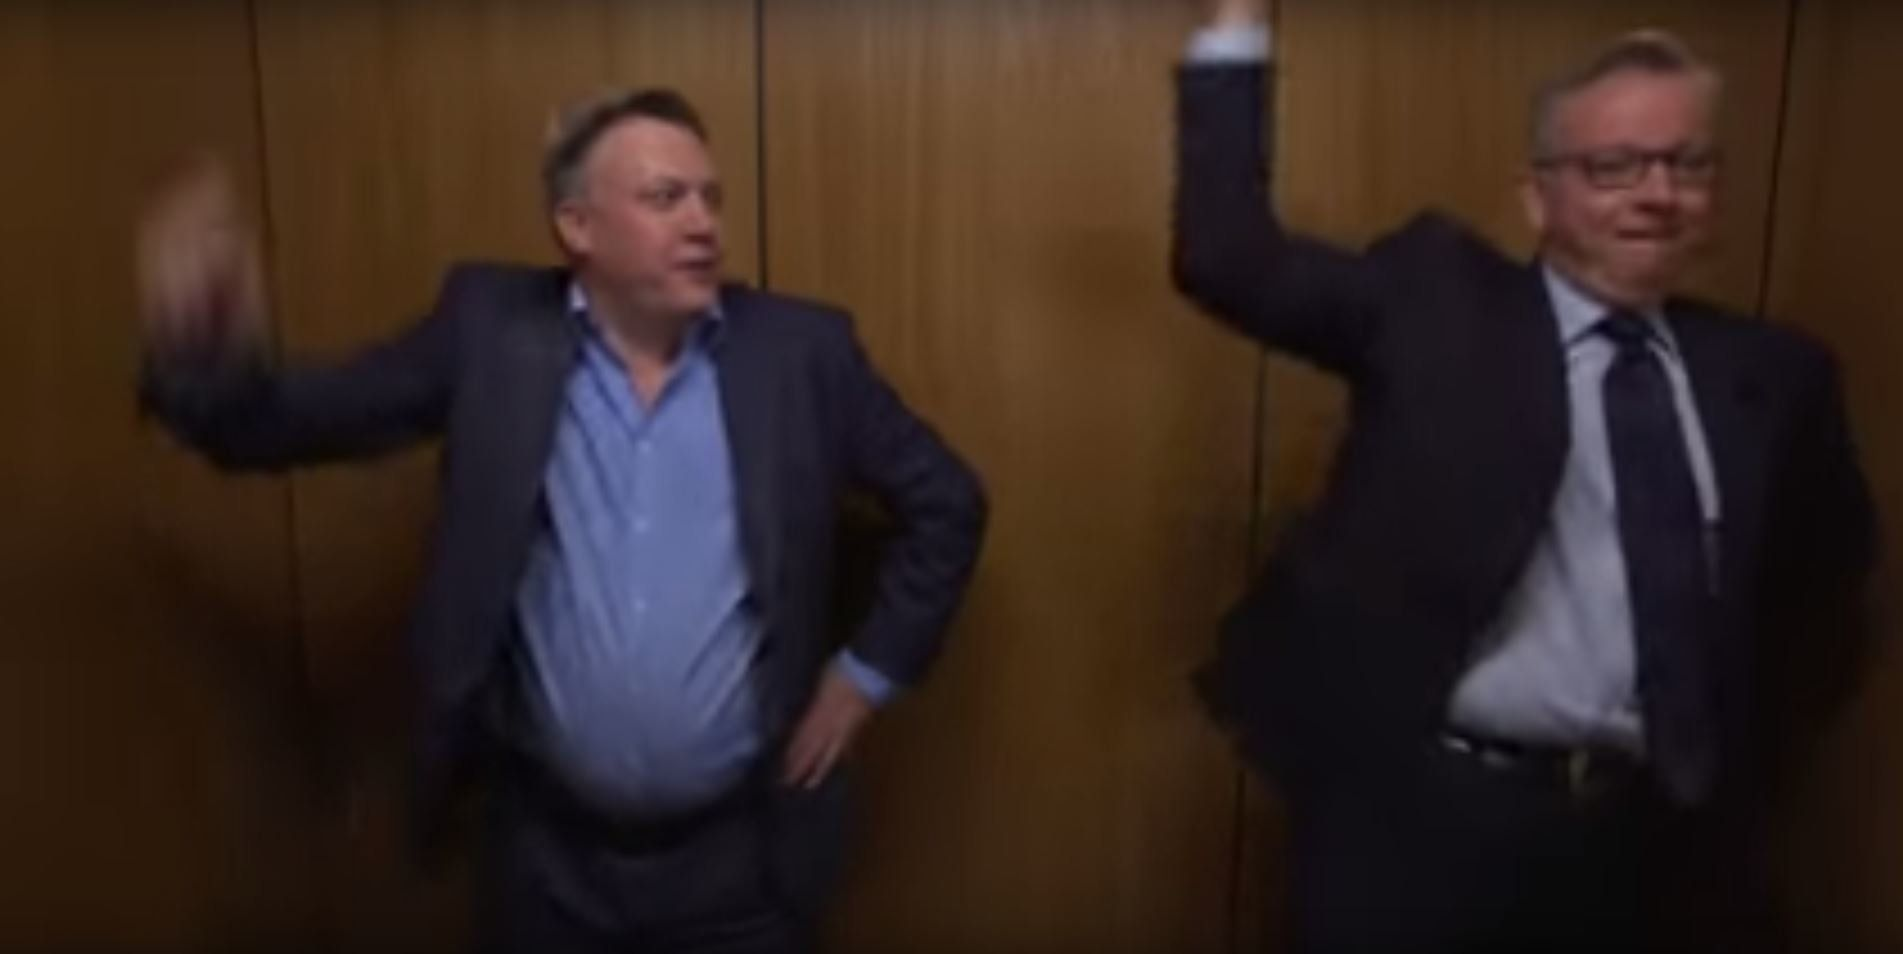 Ed Balls Teaches Michael Gove How To 'Gangnam Style' Because The World Clearly Can't Get More